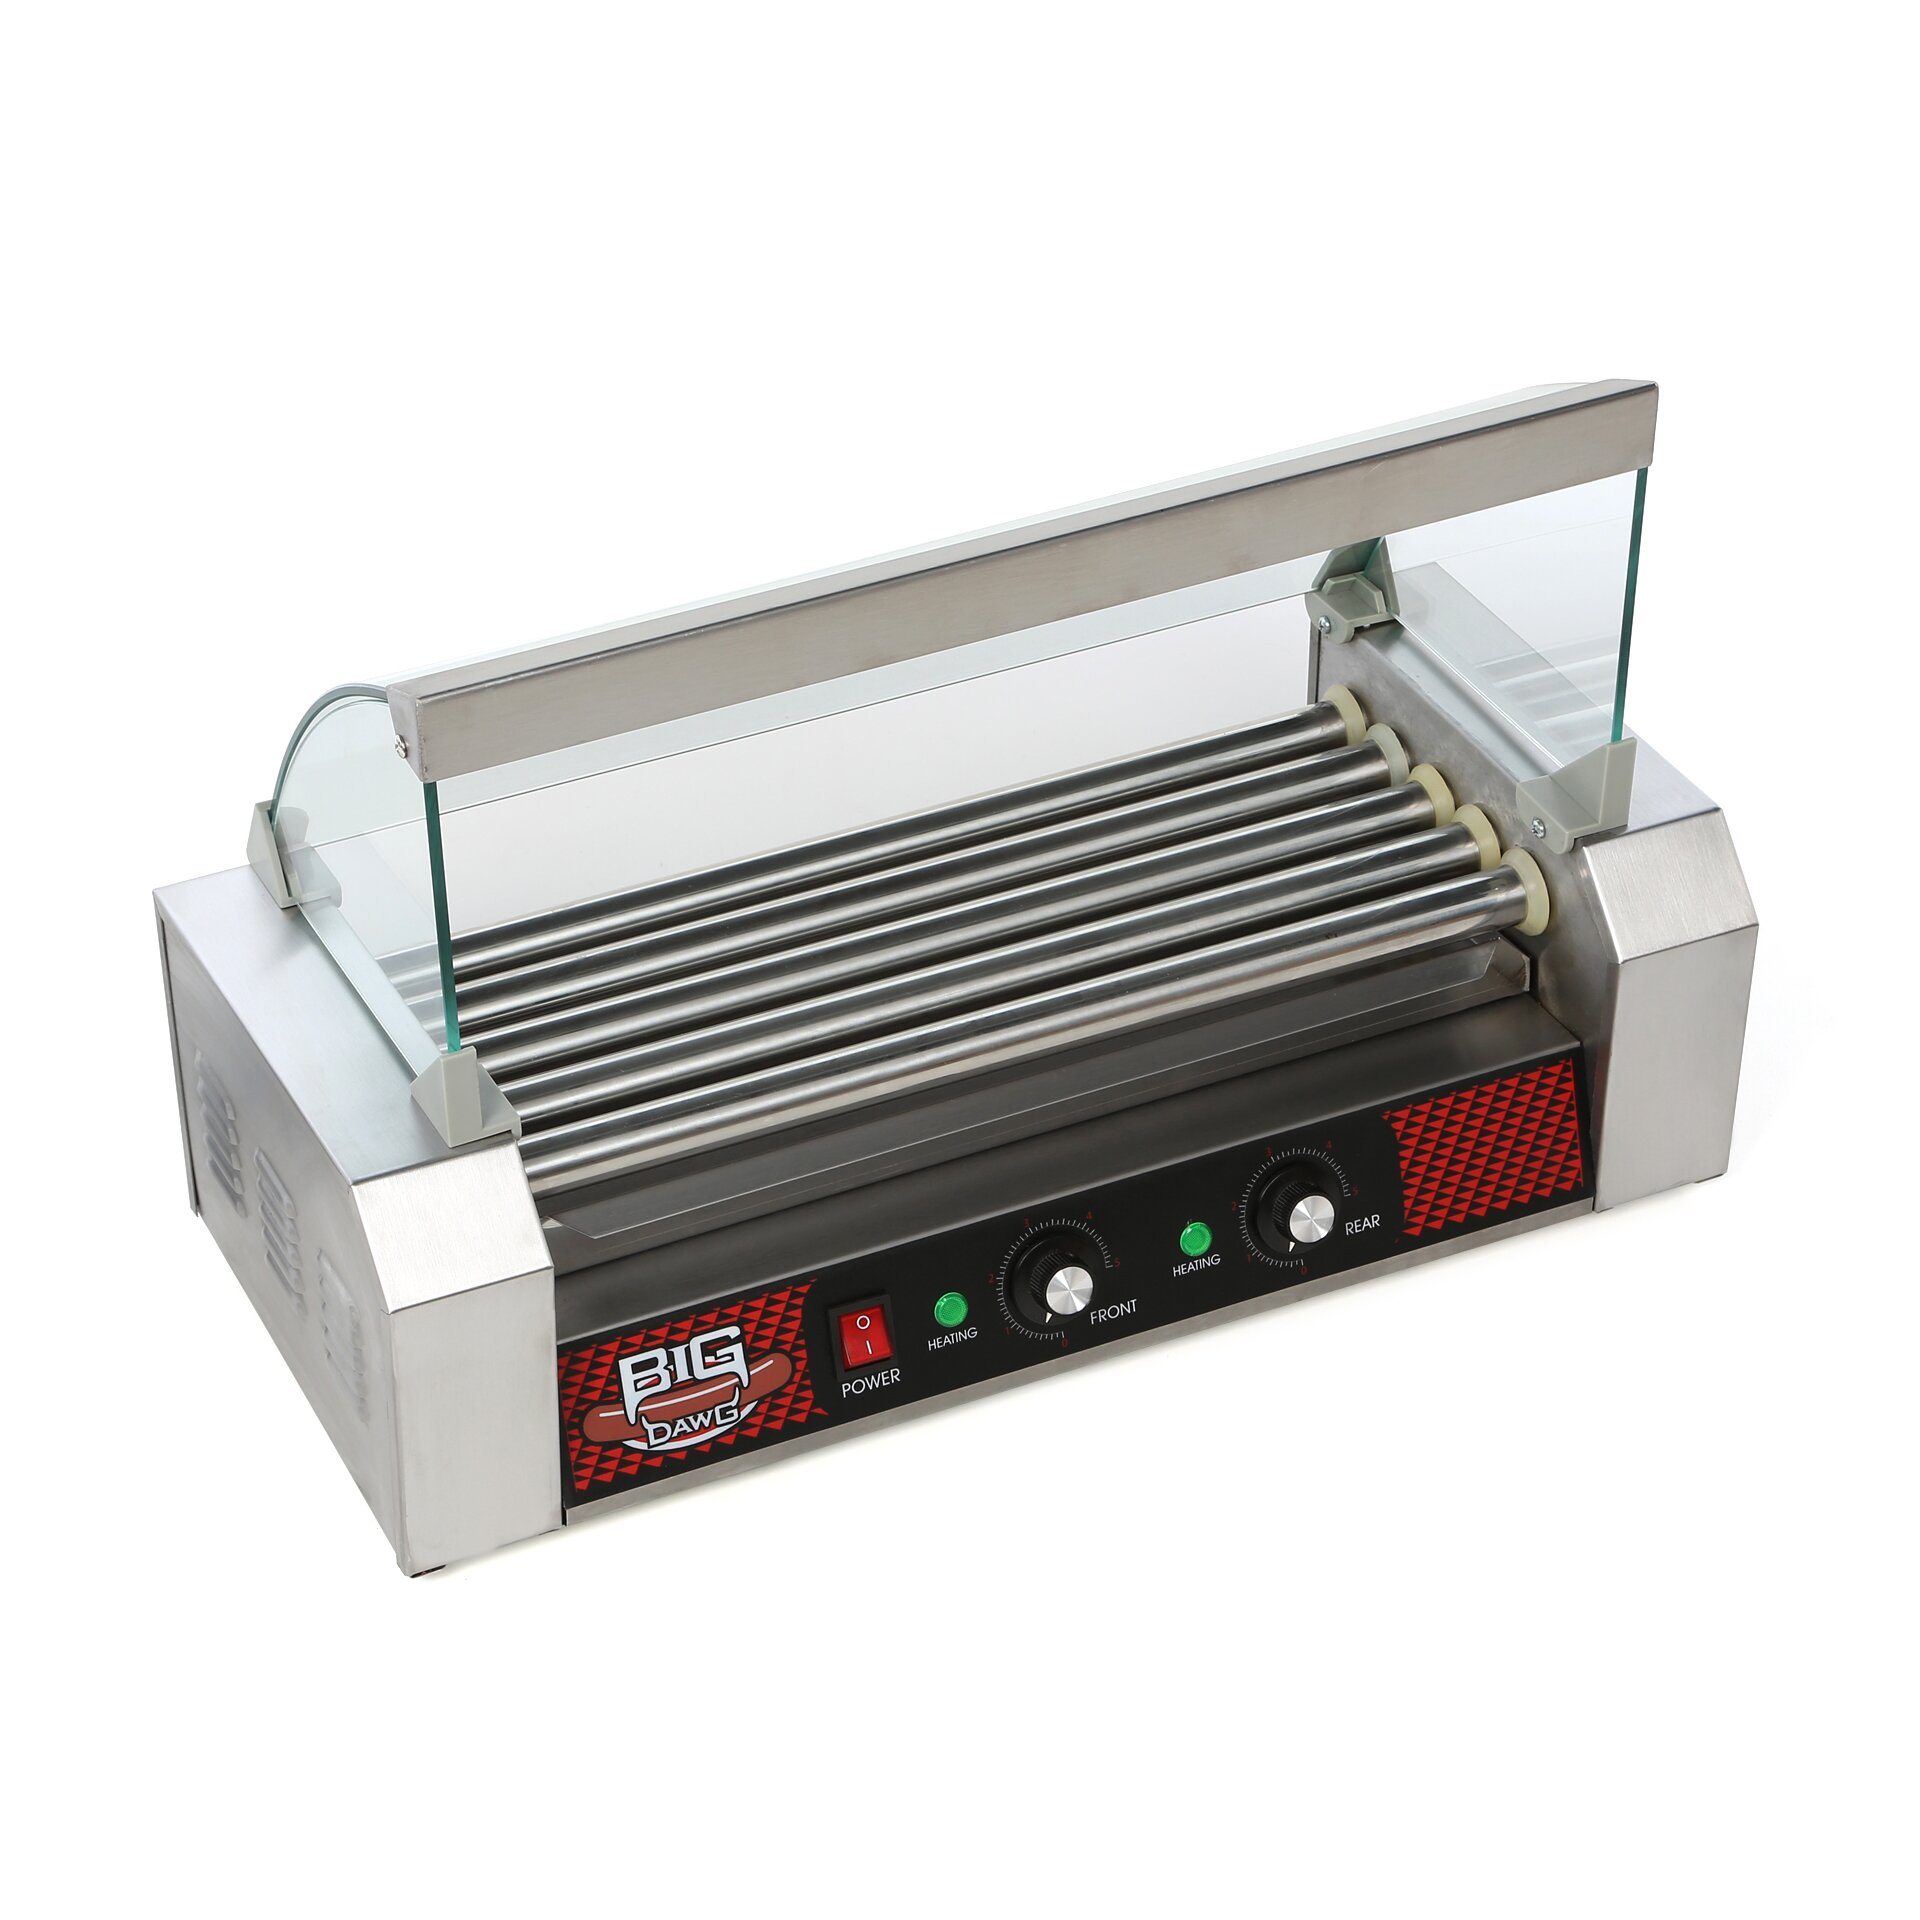 Uncategorized Hot Dog Cookers Specialty Kitchen Appliances great northern popcorn big dawg commercial 5 roller hot dog machine with cover